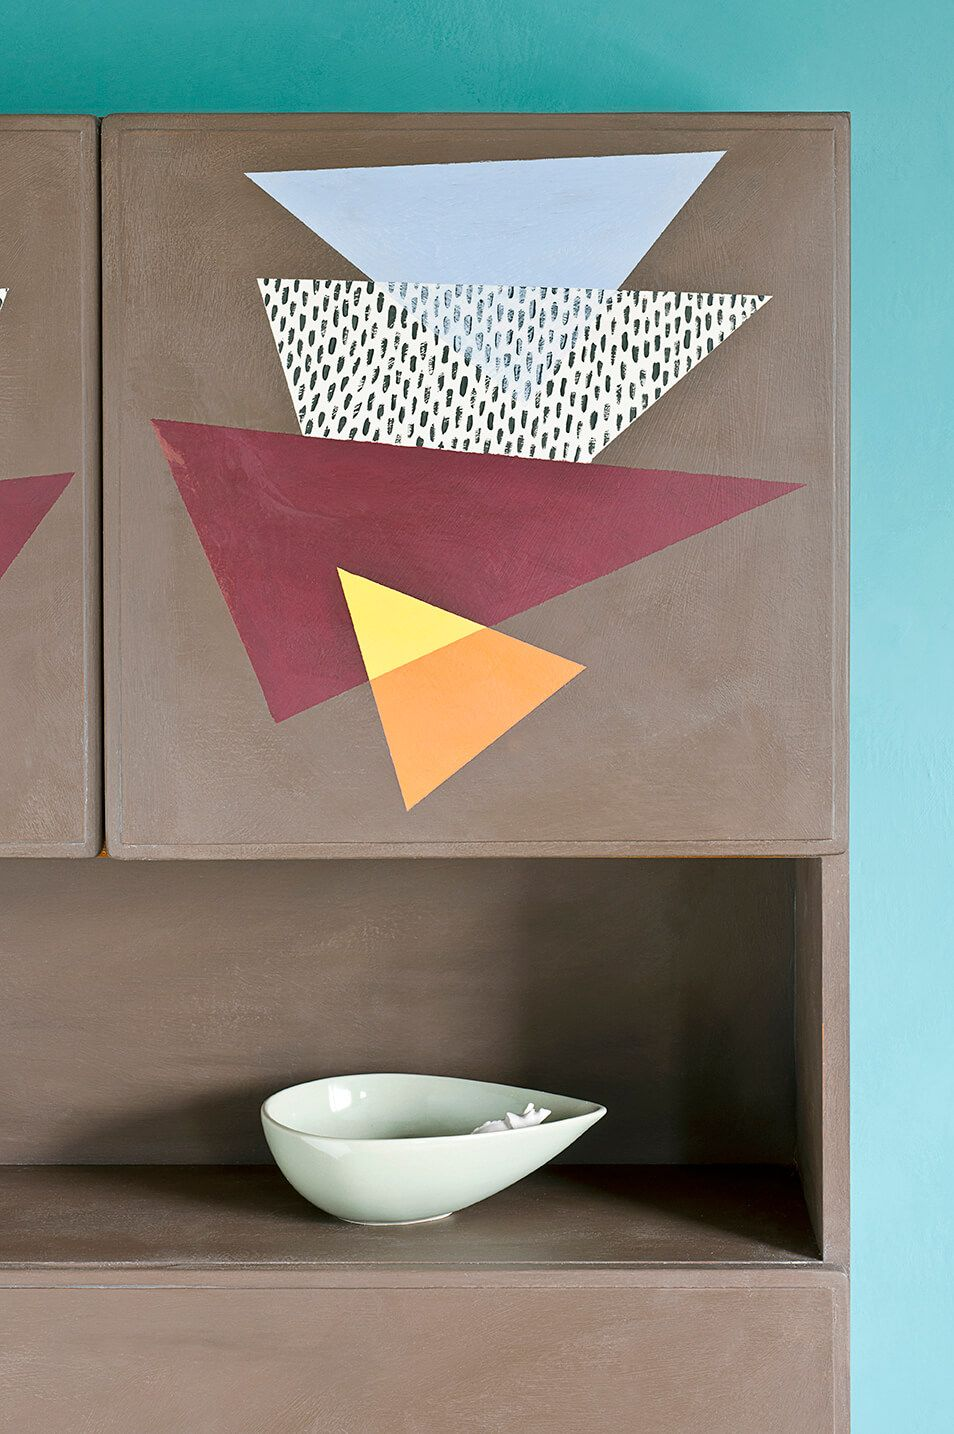 Contemporary Cupboards honfleur chalk paint® on cupboard with contemporary graphic design